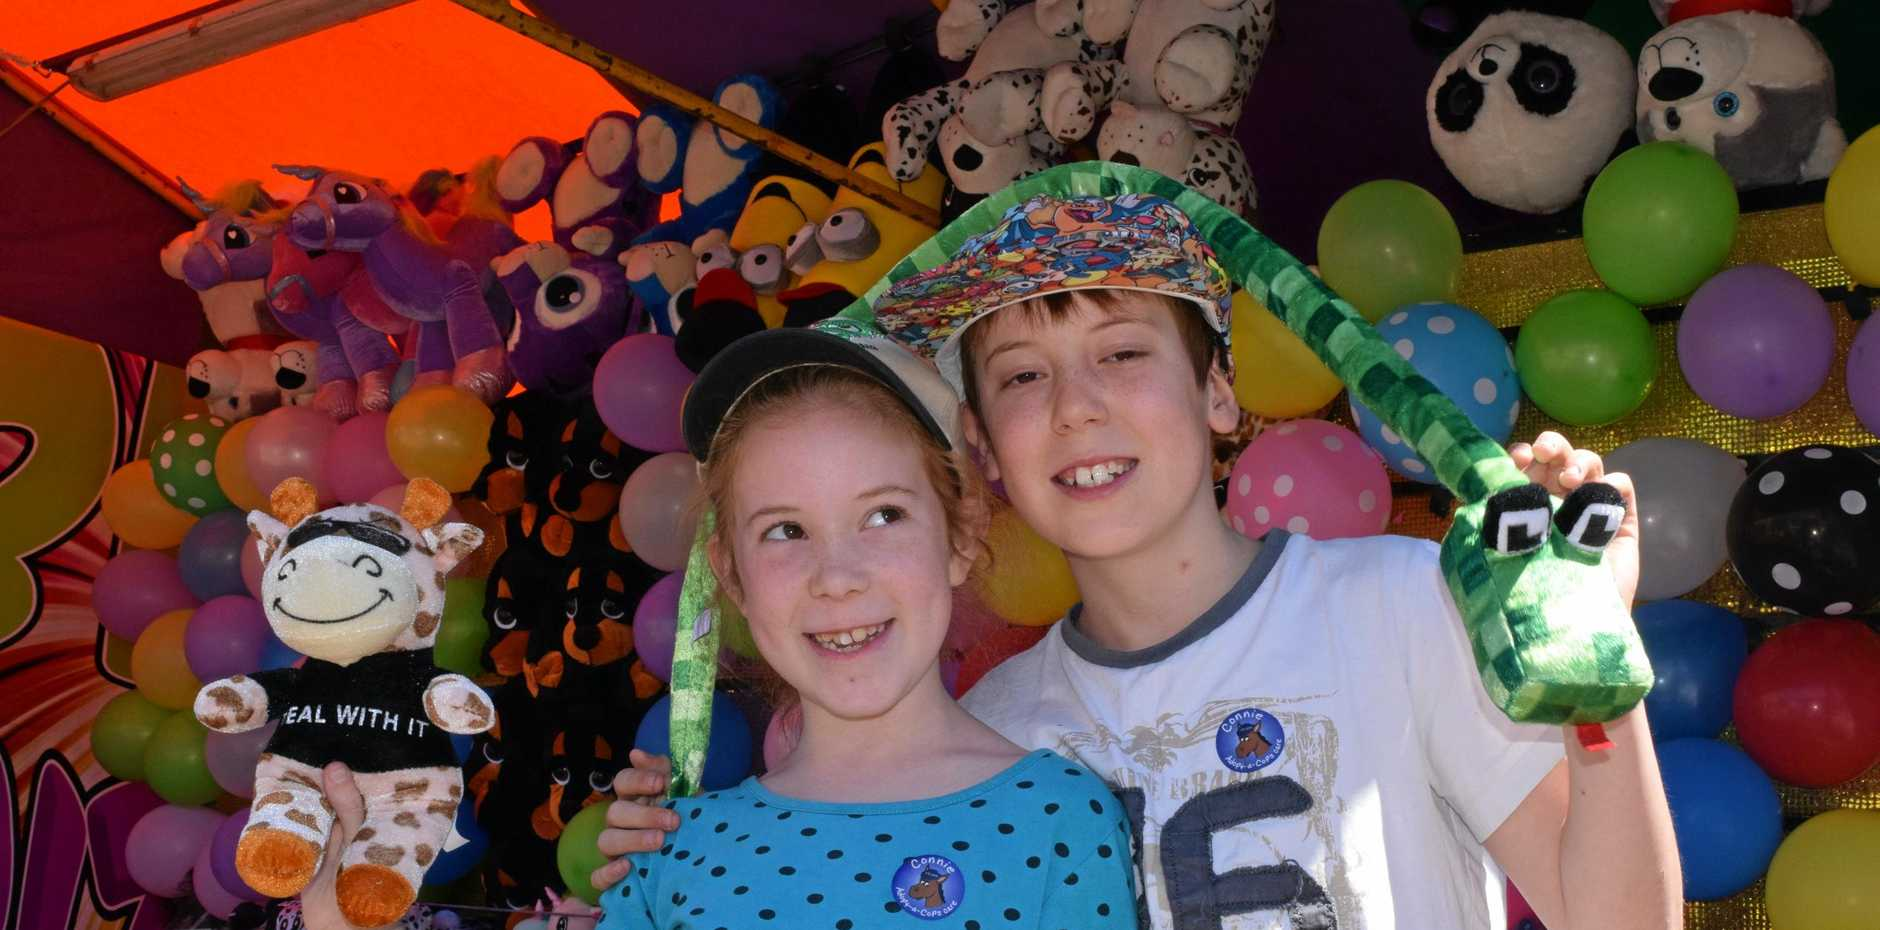 Darcie, 9, and Cooper, 10, Withers from Cooroibah